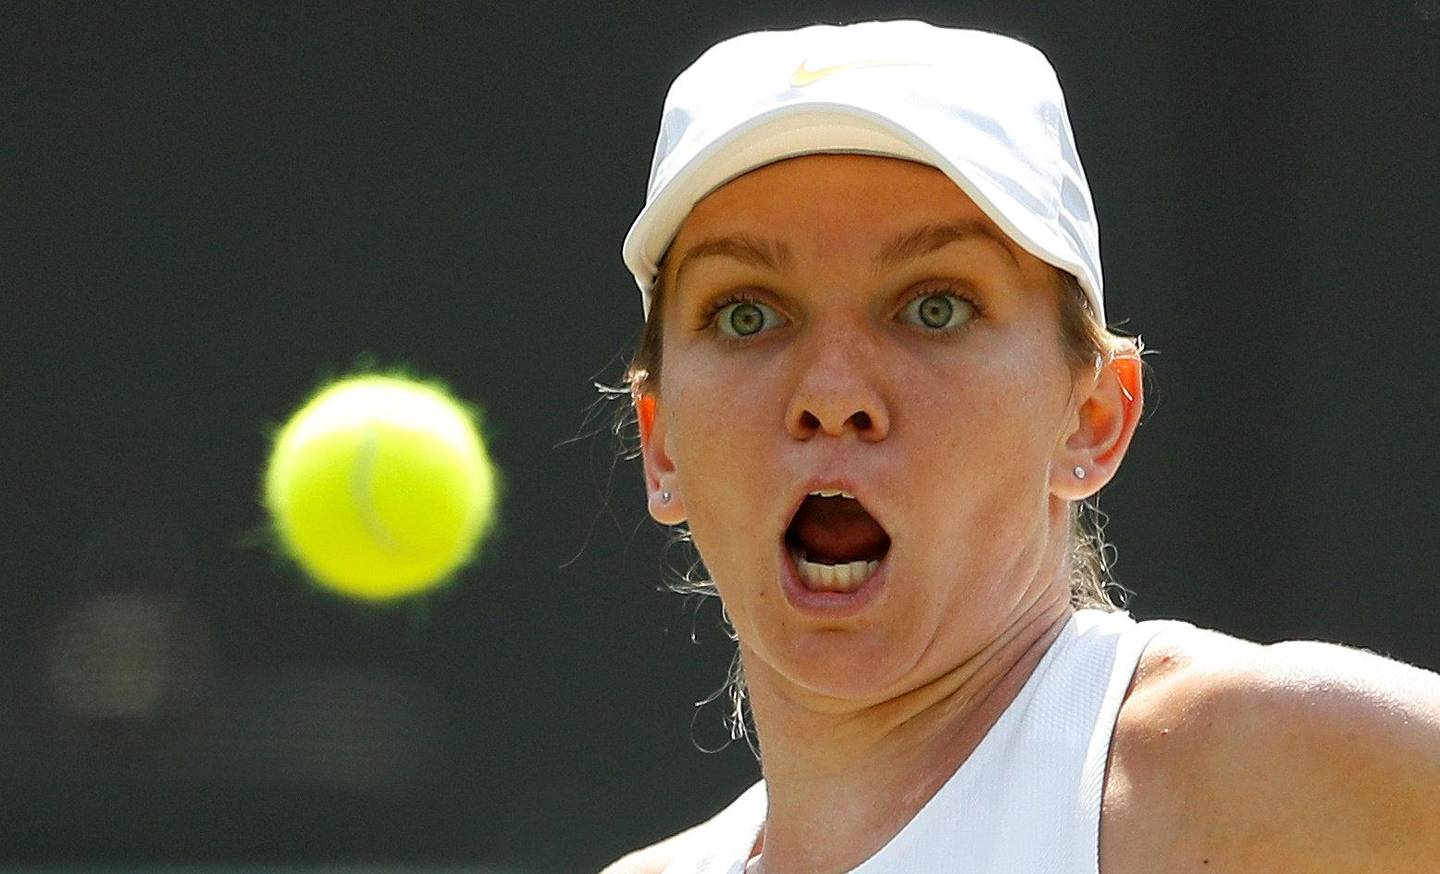 Tennis - Wimbledon - All England Lawn Tennis and Croquet Club, London, Britain - July 7, 2018. Romania's Simona Halep hits a shot during her third round match against Taiwan's Su-Wei Hsieh.  REUTERS/Peter Nicholls     TPX IMAGES OF THE DAY